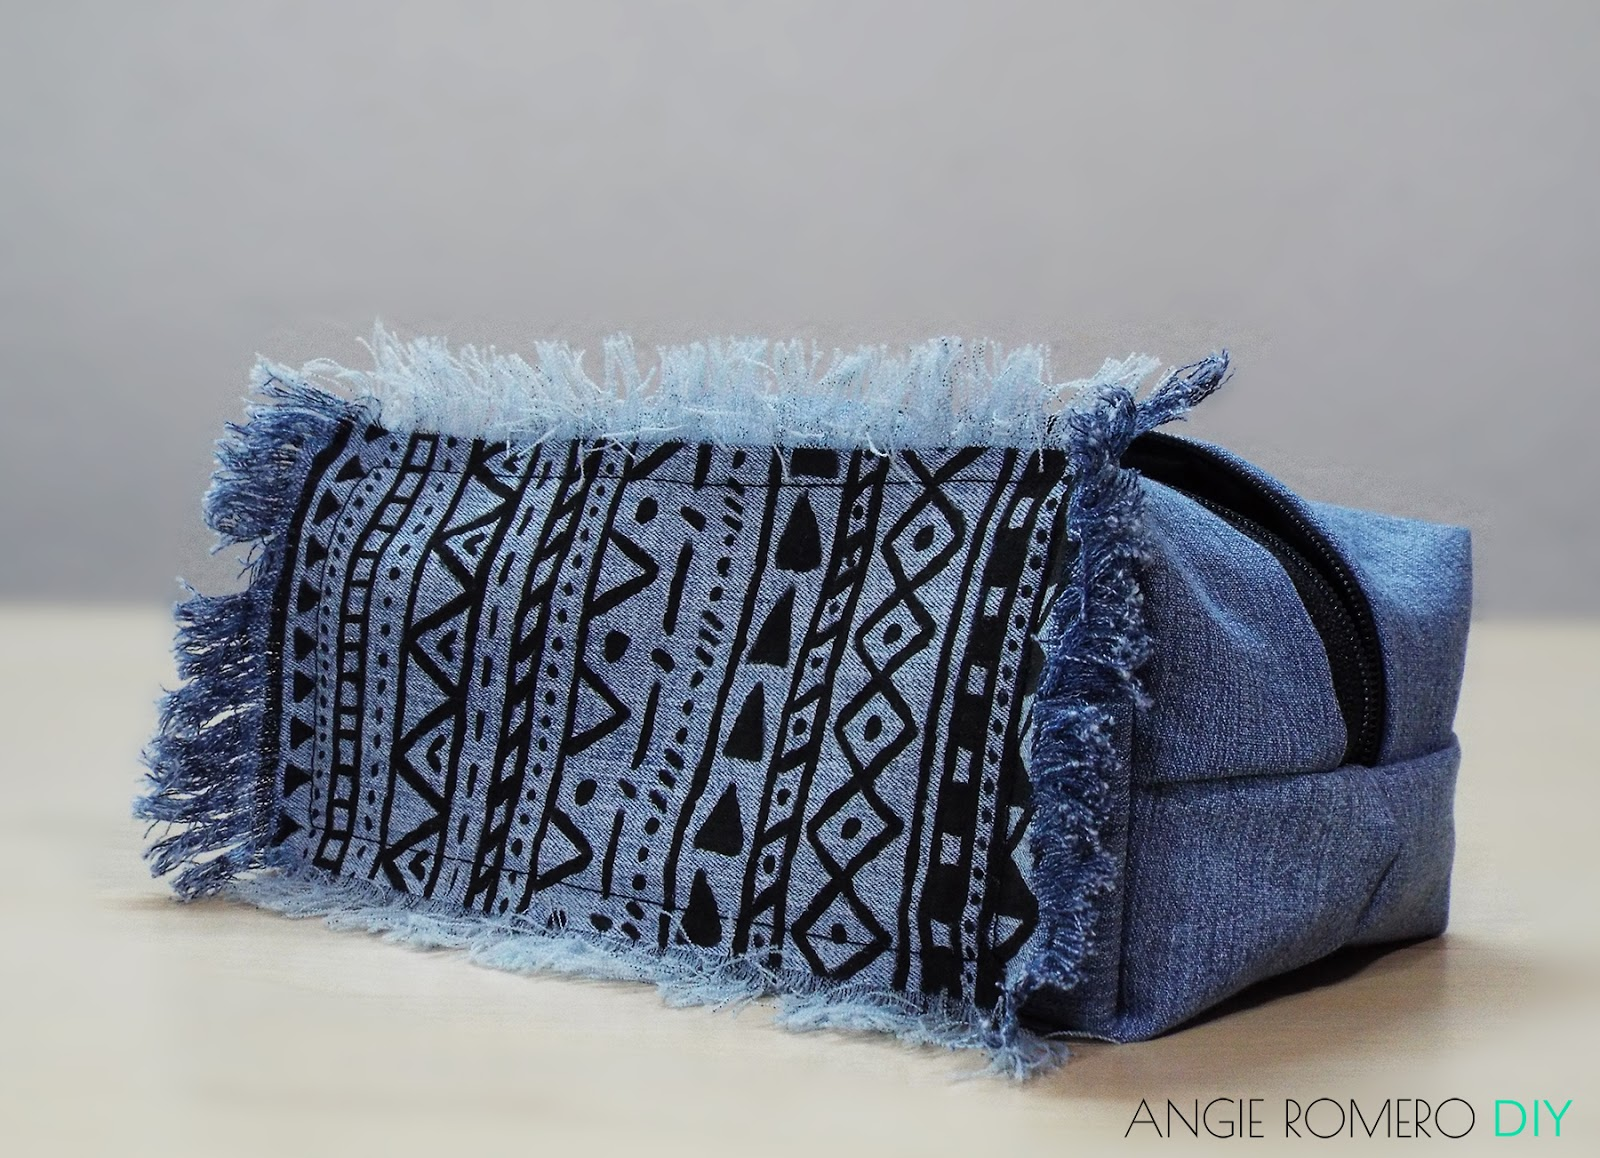 DIY cosmetiquera o cartuchera con estampado tribal hecha de jeans reciclados